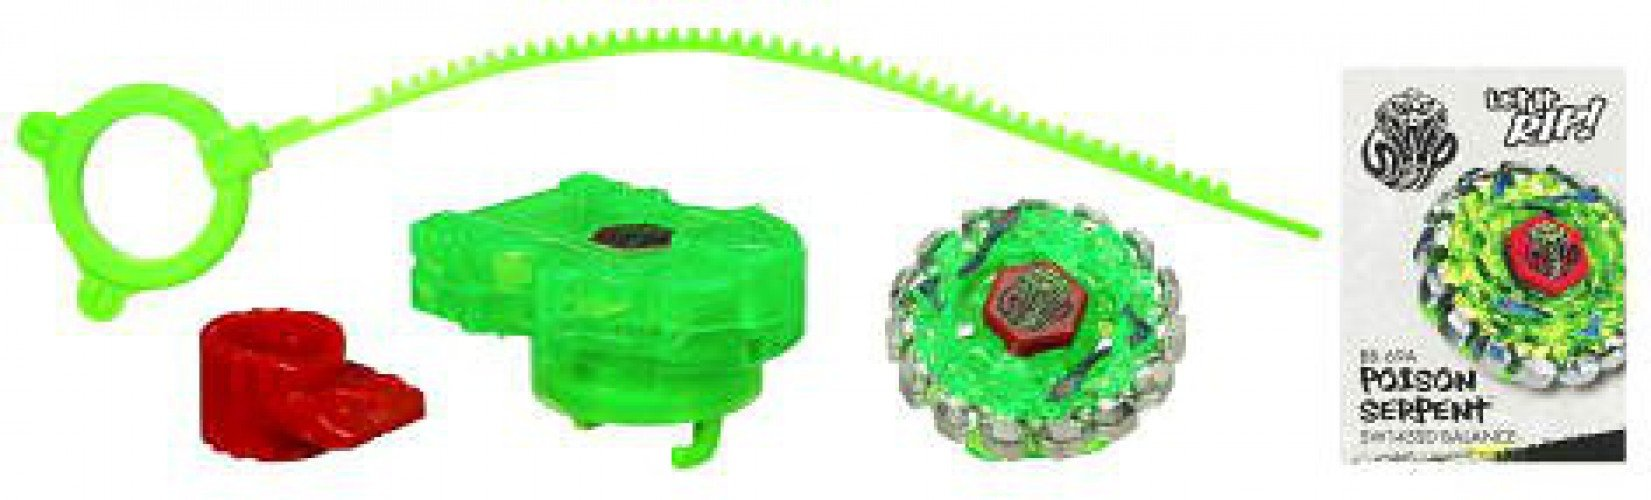 Beyblade Sonic Series Spinning Tops - Poison Serpent by Hasbro (Image #1)